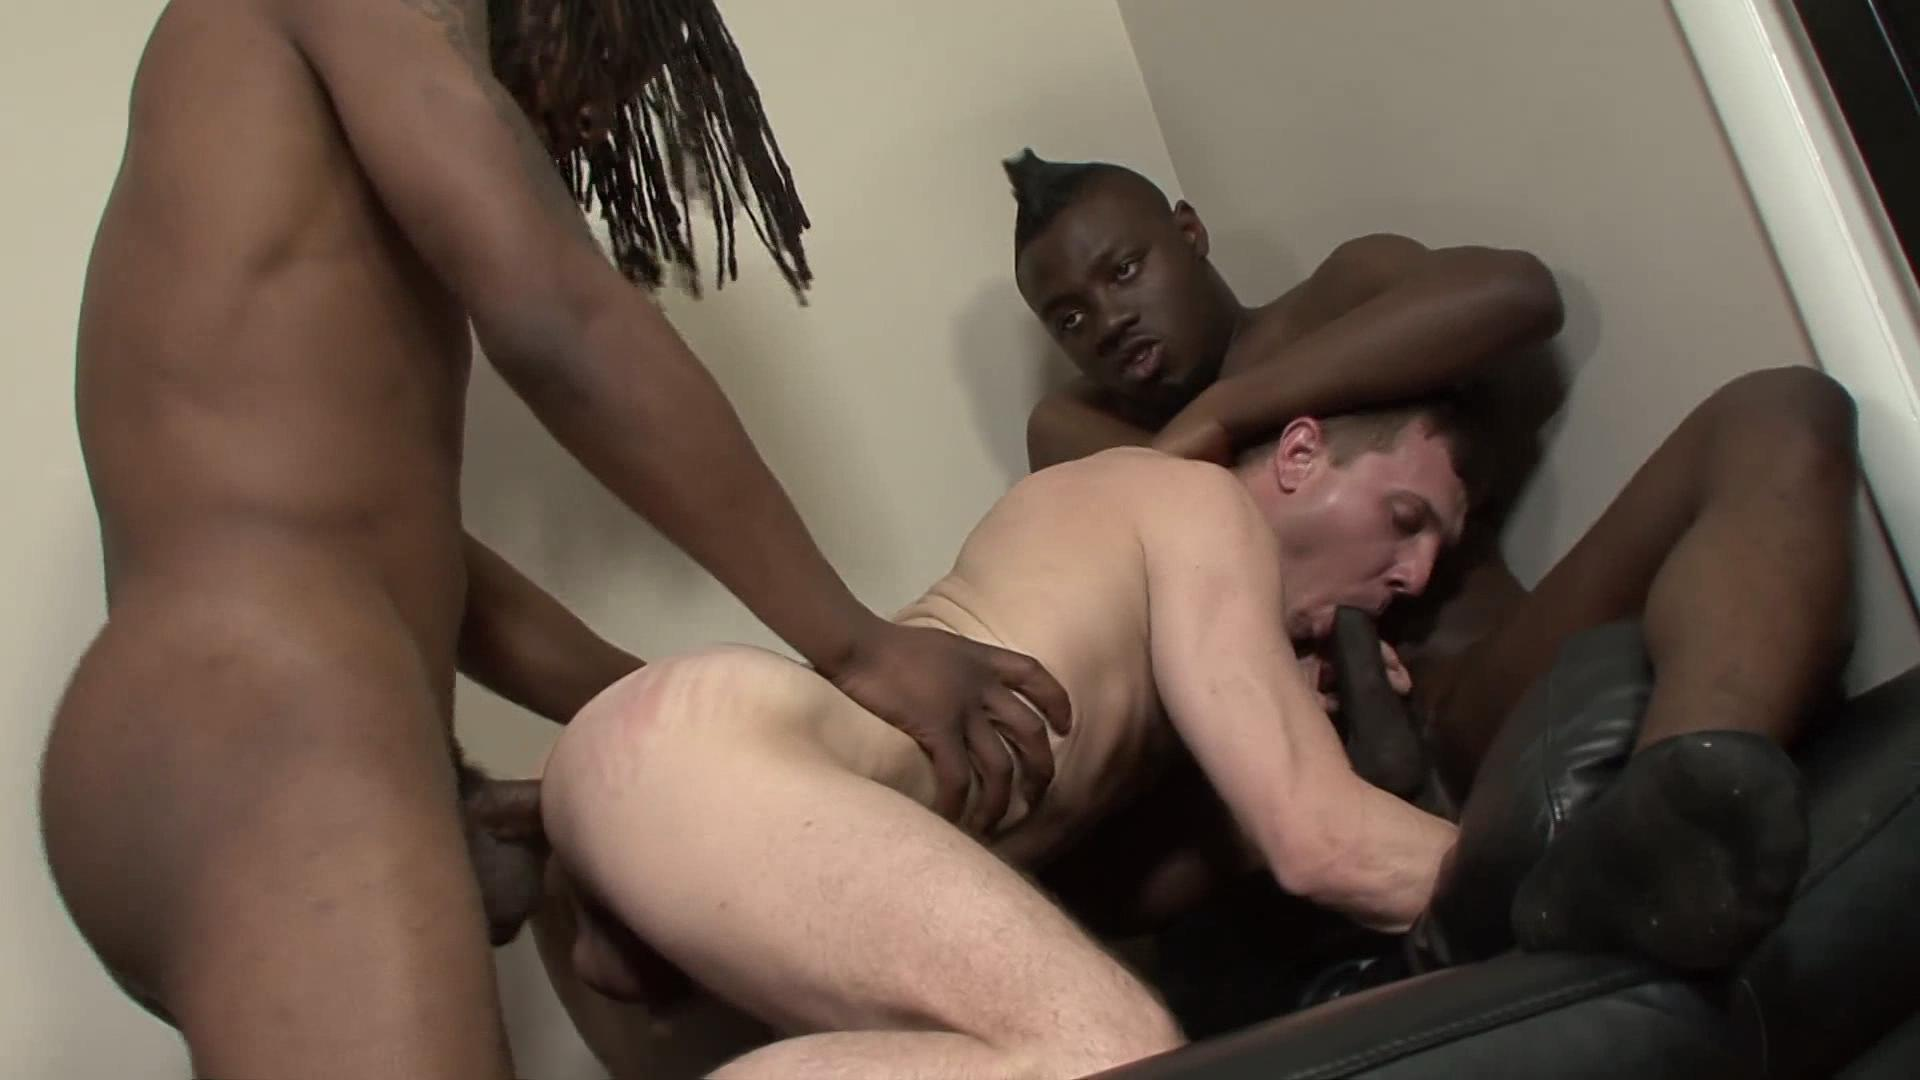 Free innocent interracial gay porn